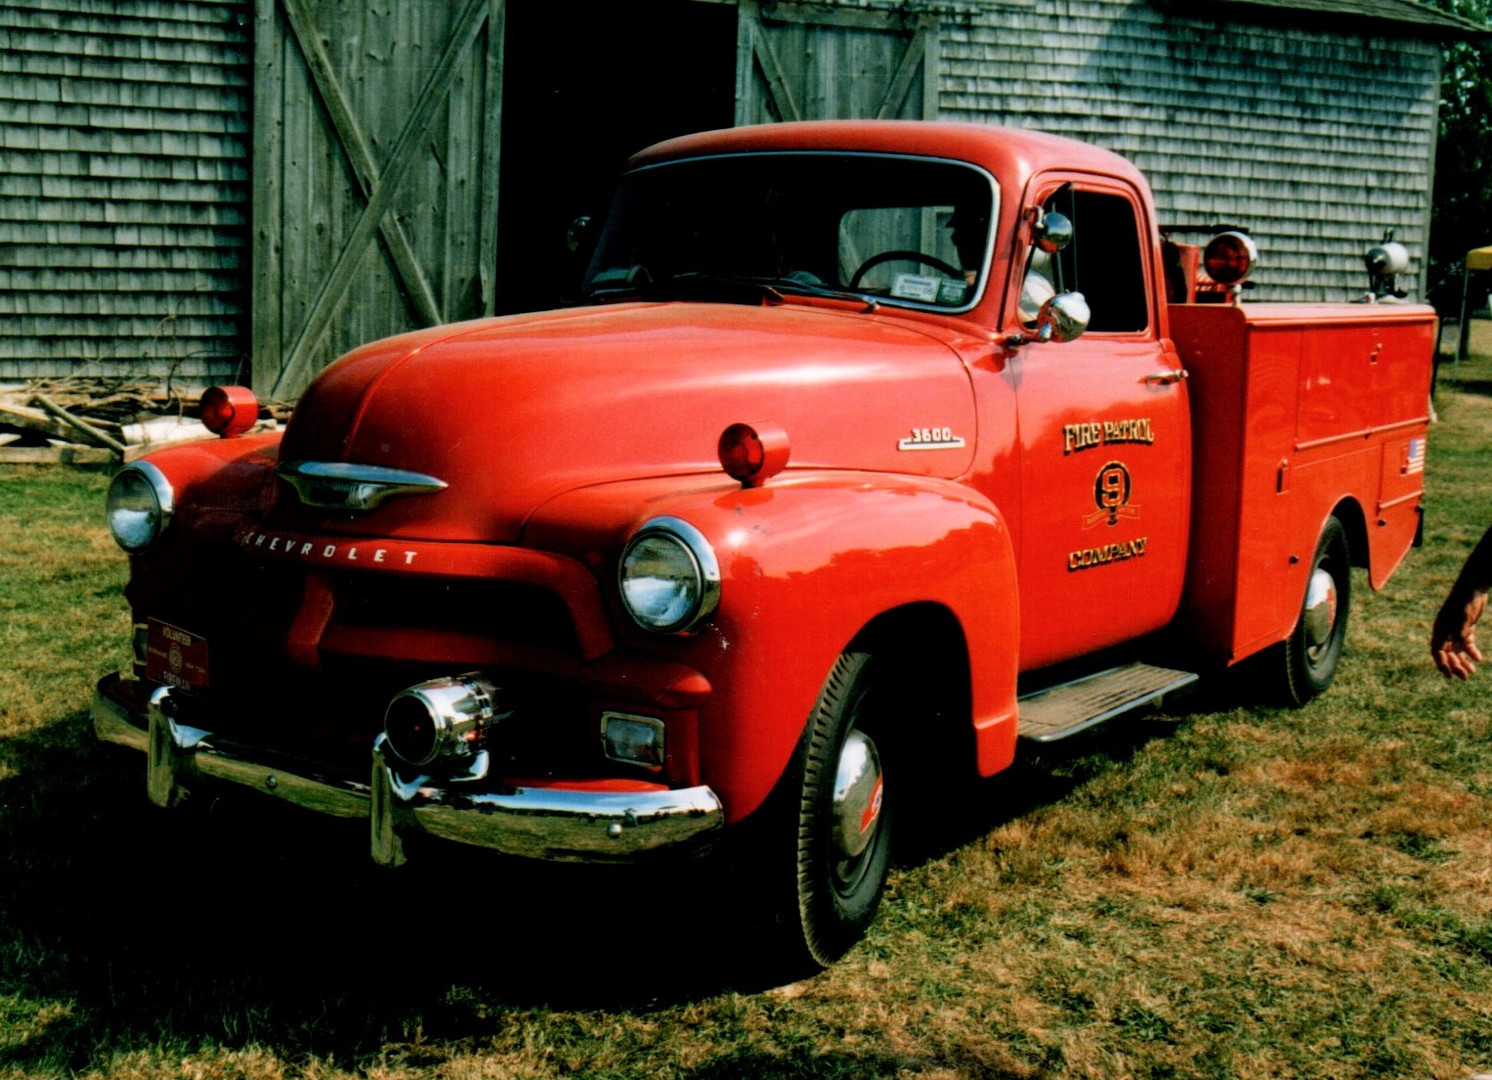 1954 Chevrolet 3600 fire patrol - Philip Kenter